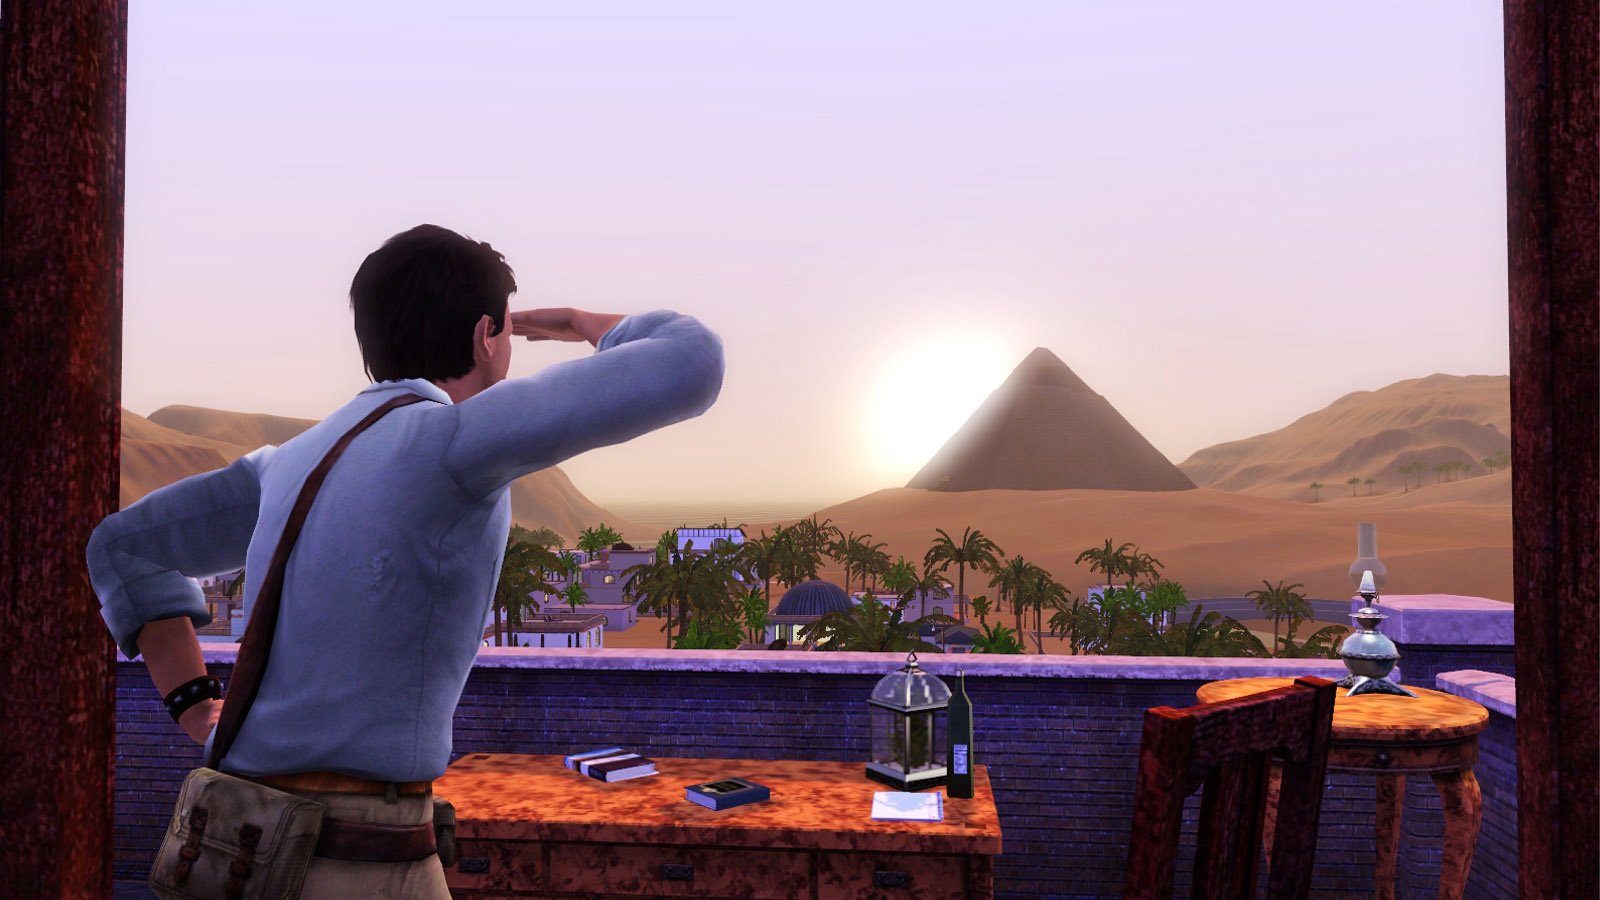 http://www.thesims3.com/content/global/images/news/screen_1_nonwater.jpg